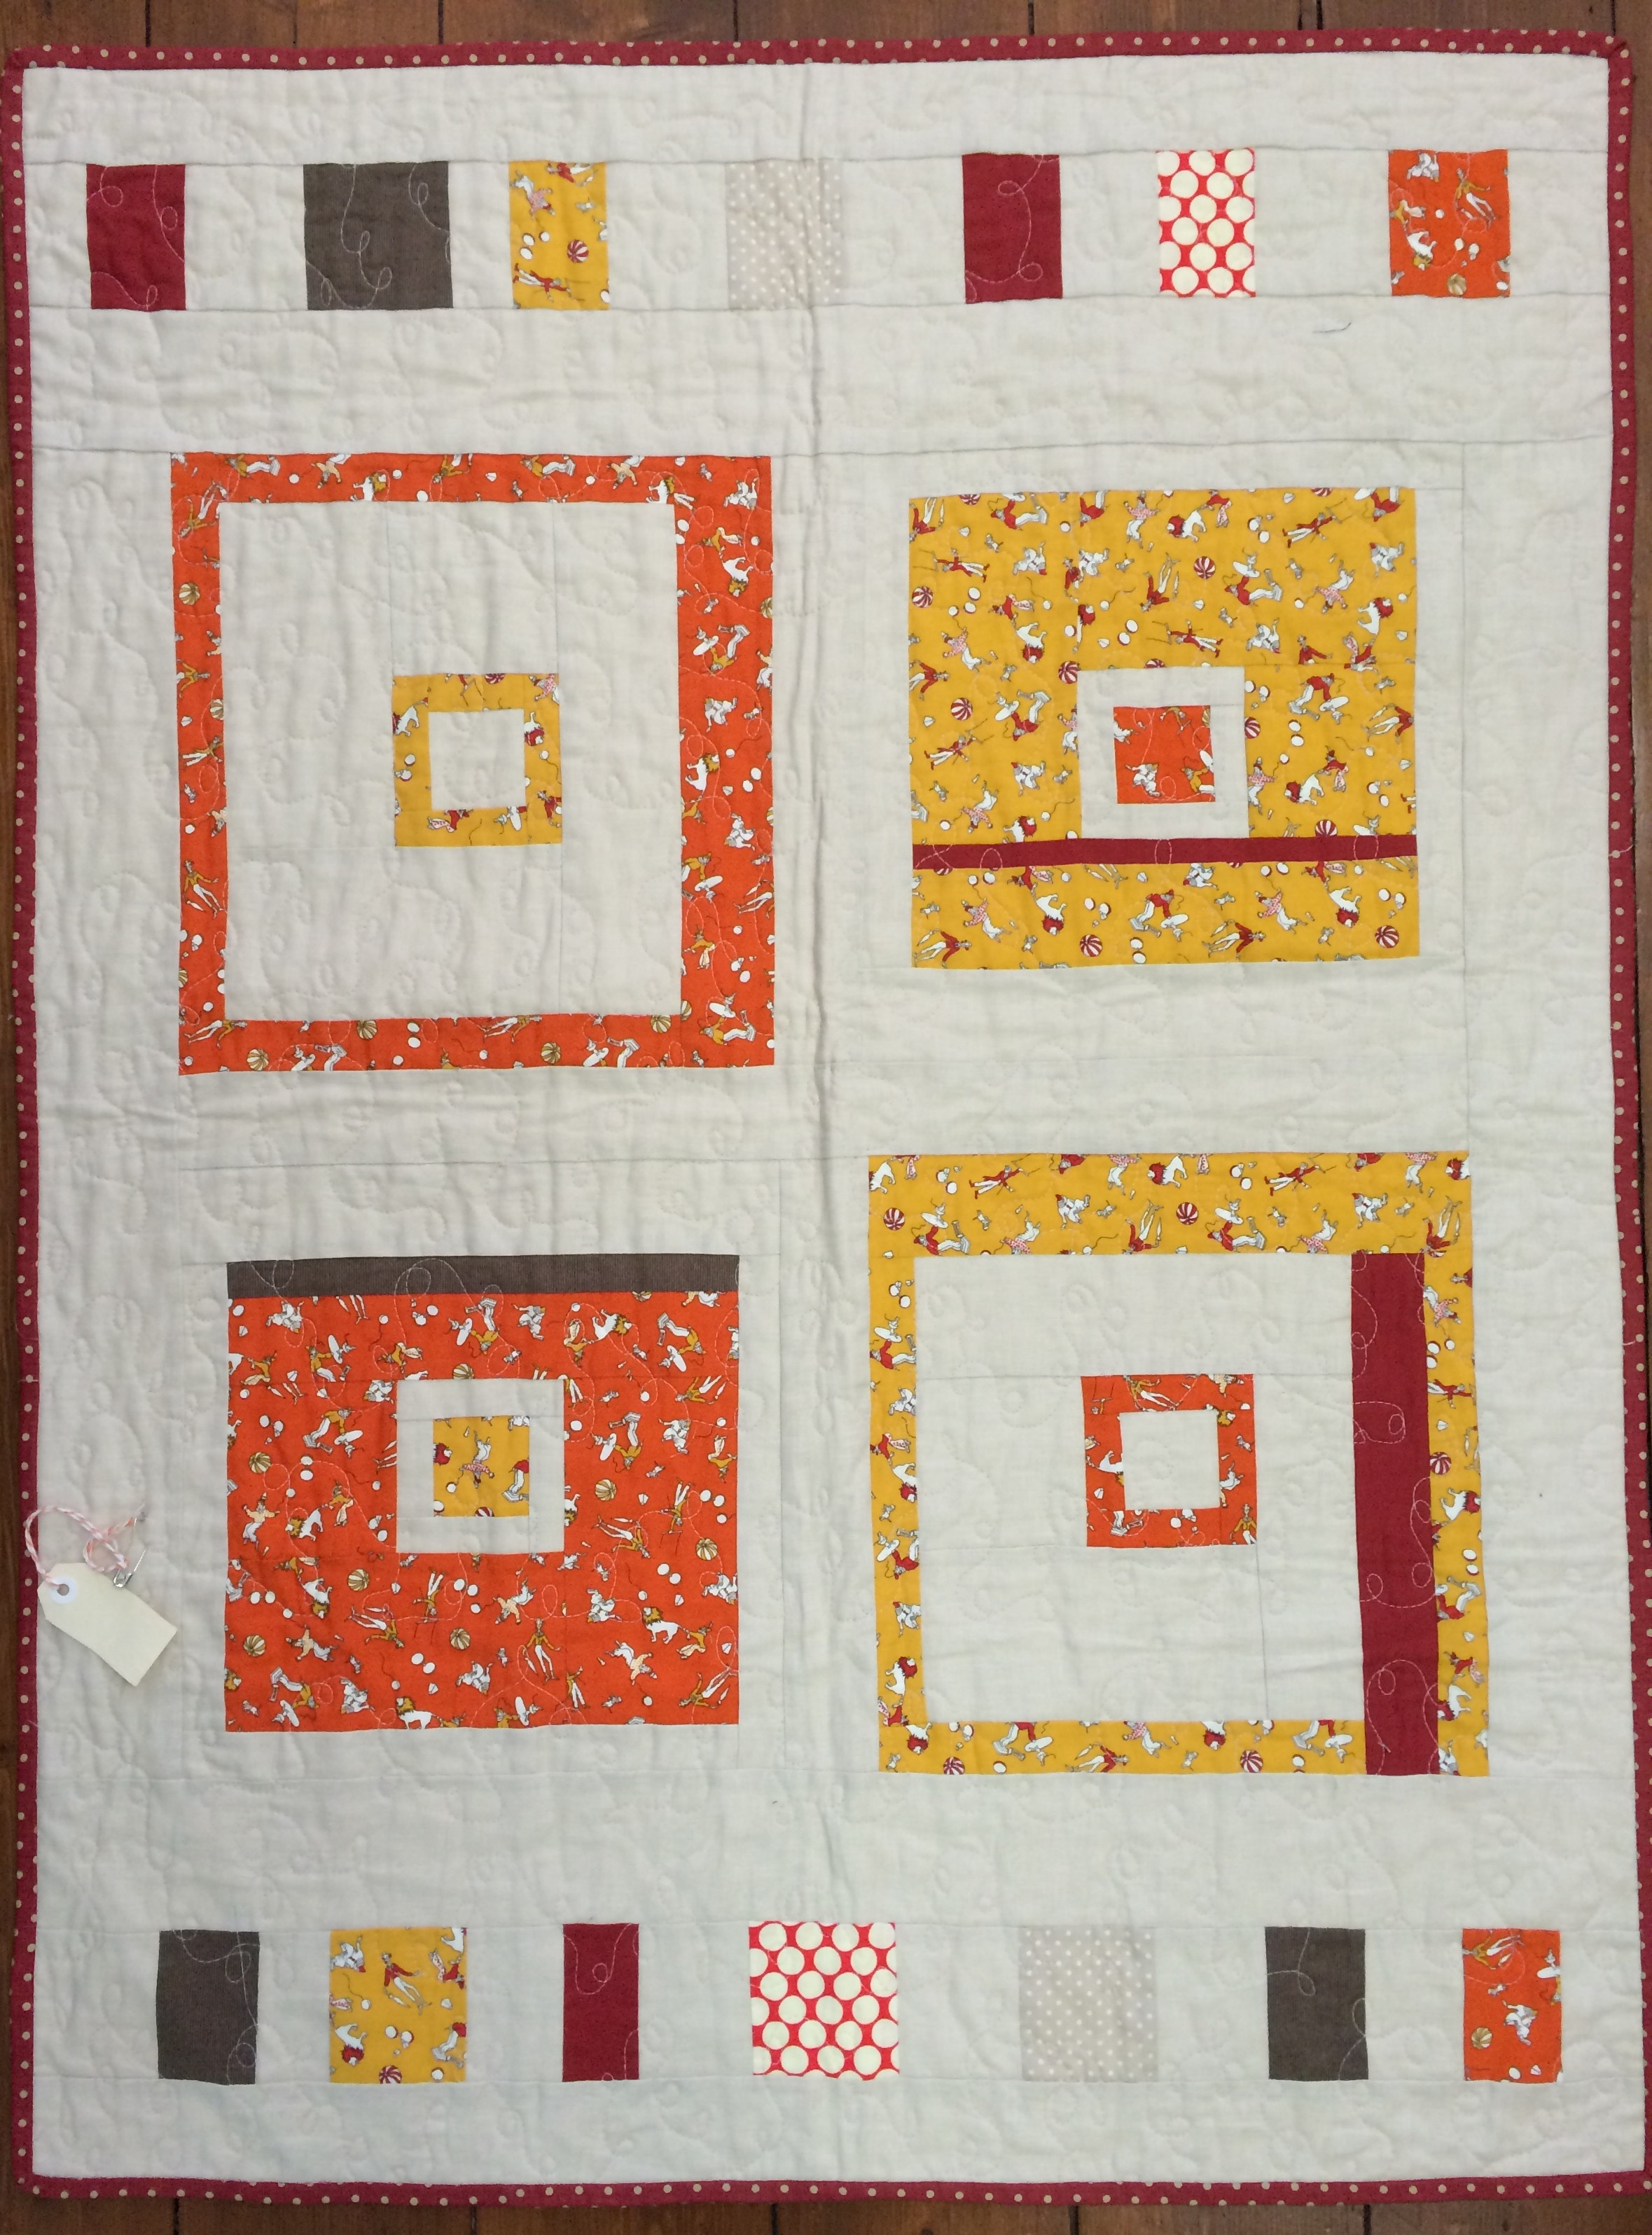 A Kate Conklin pattern, 'A square in there', in linen and cotton fabrics.